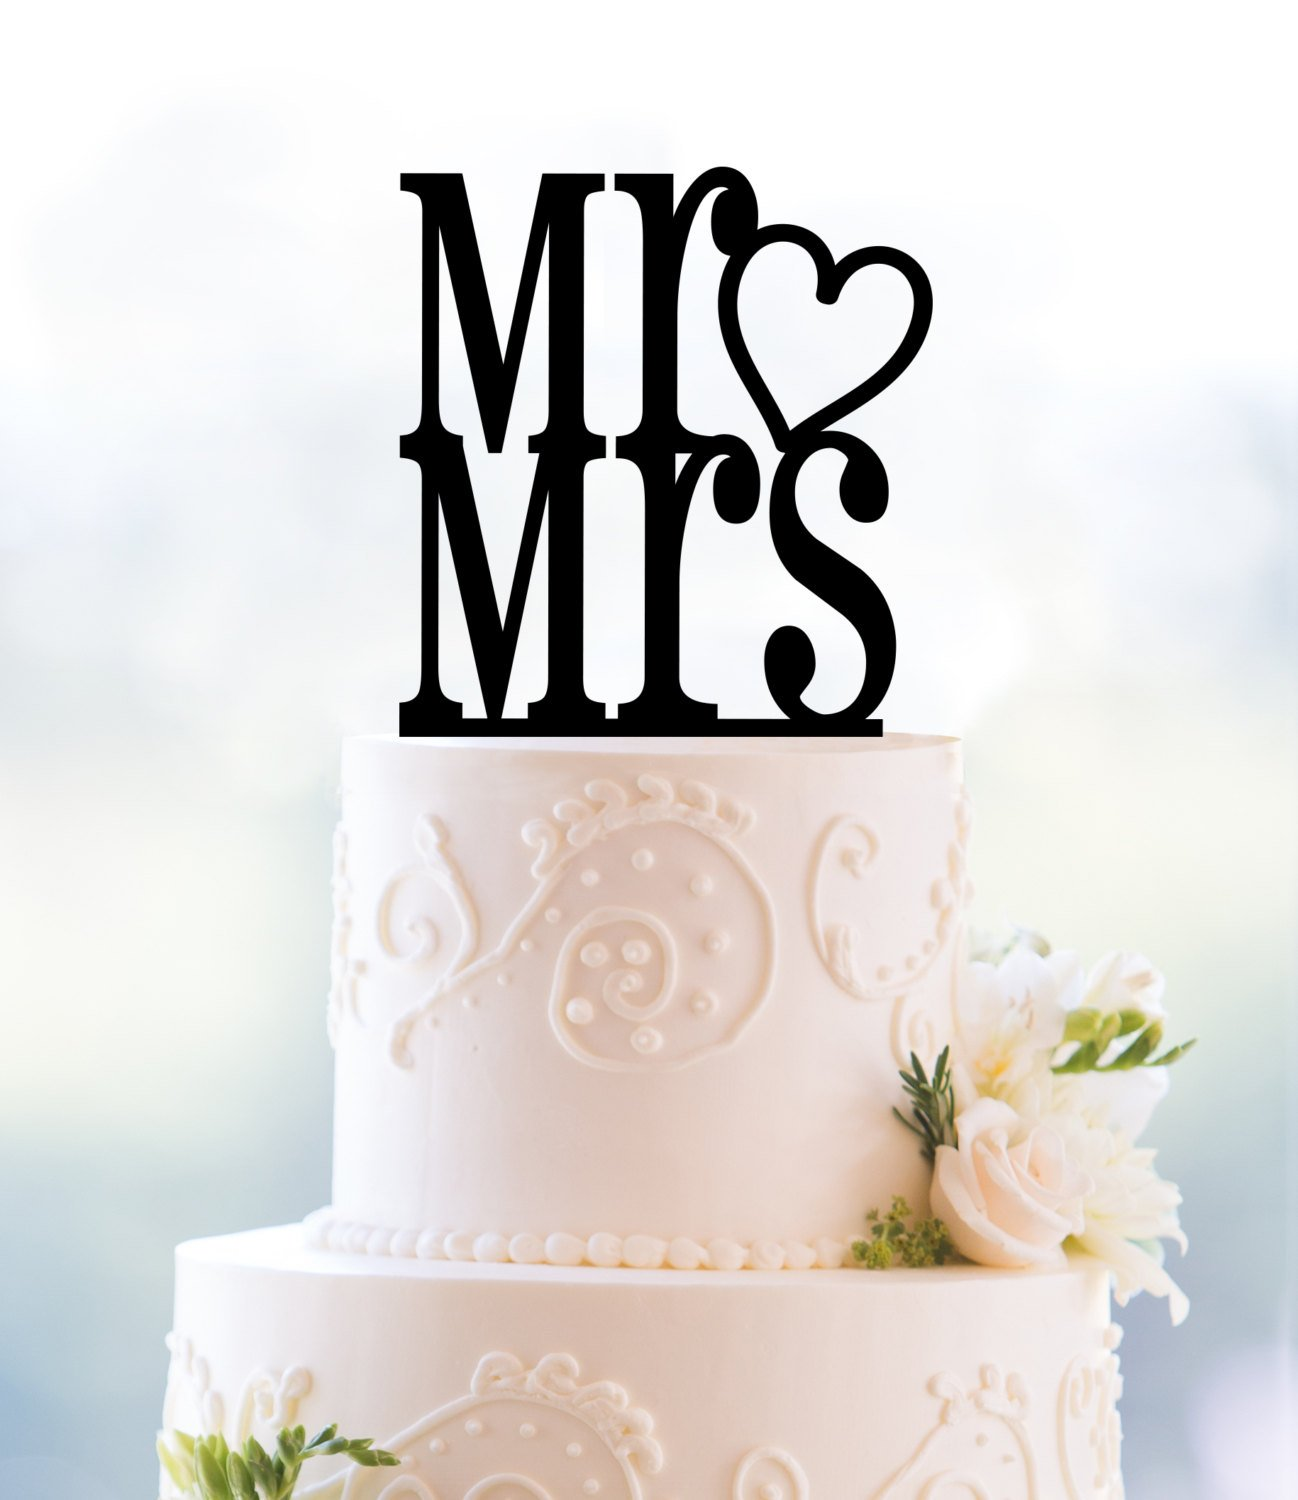 Cutest Wedding Cake Toppers.Mr And Mrs With Heart Cake Topper Wedding Cake Toppers Cute Cake Topper Romantic Cake Topper Engagement Gift Bridal Shower Gift T066